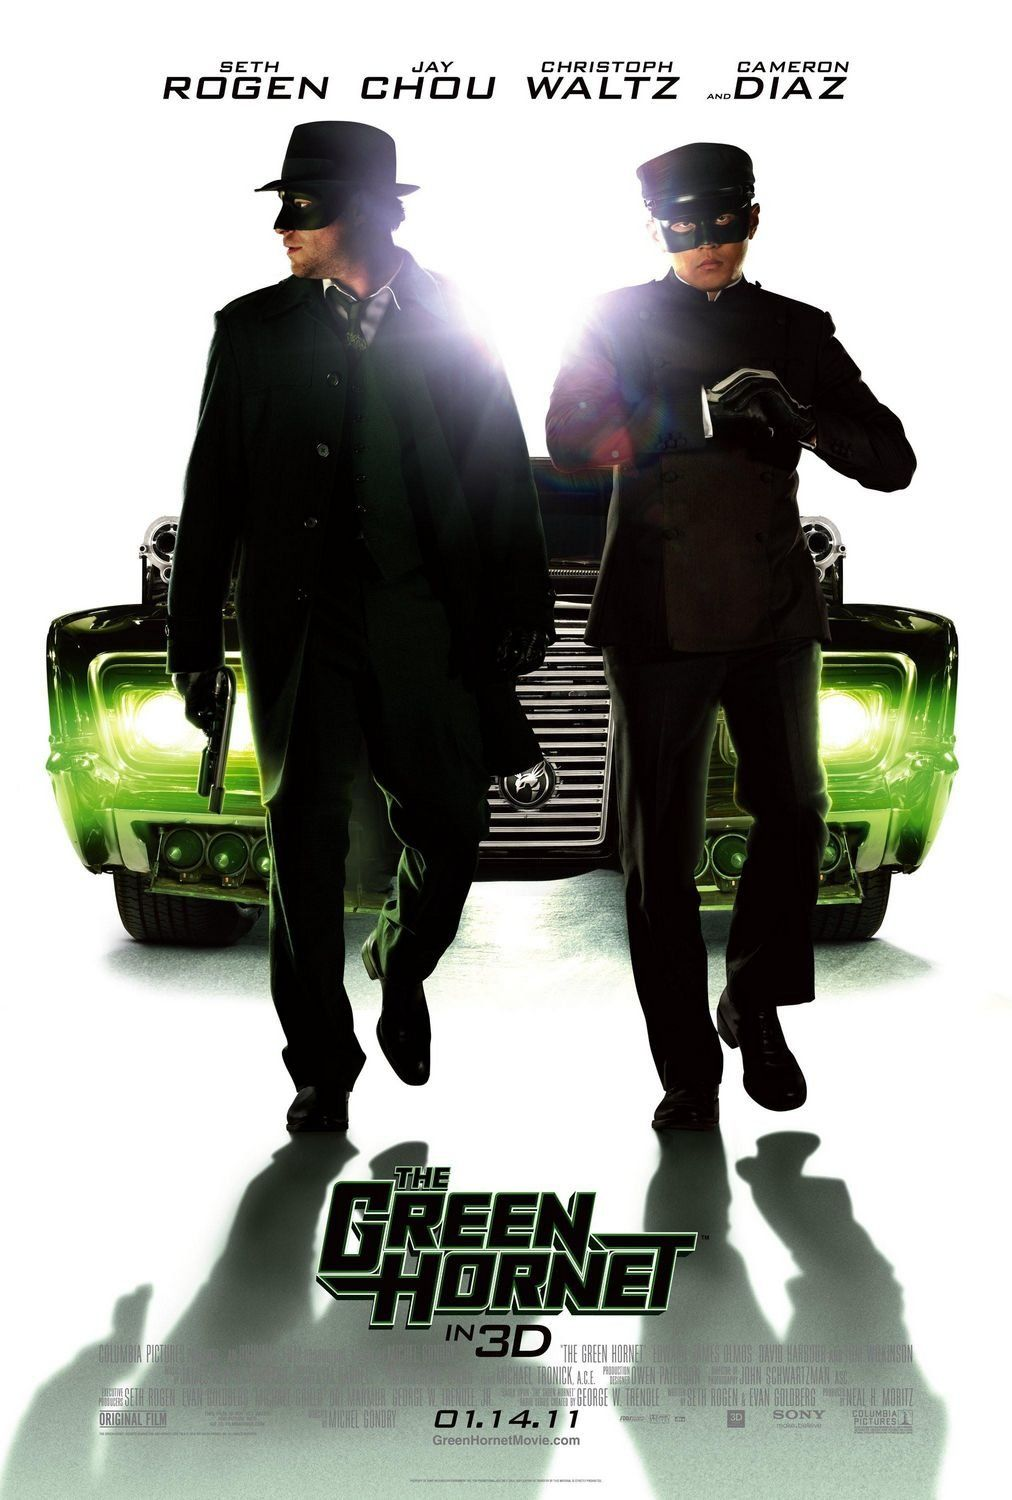 Notes On A DVD: The Green Hornet